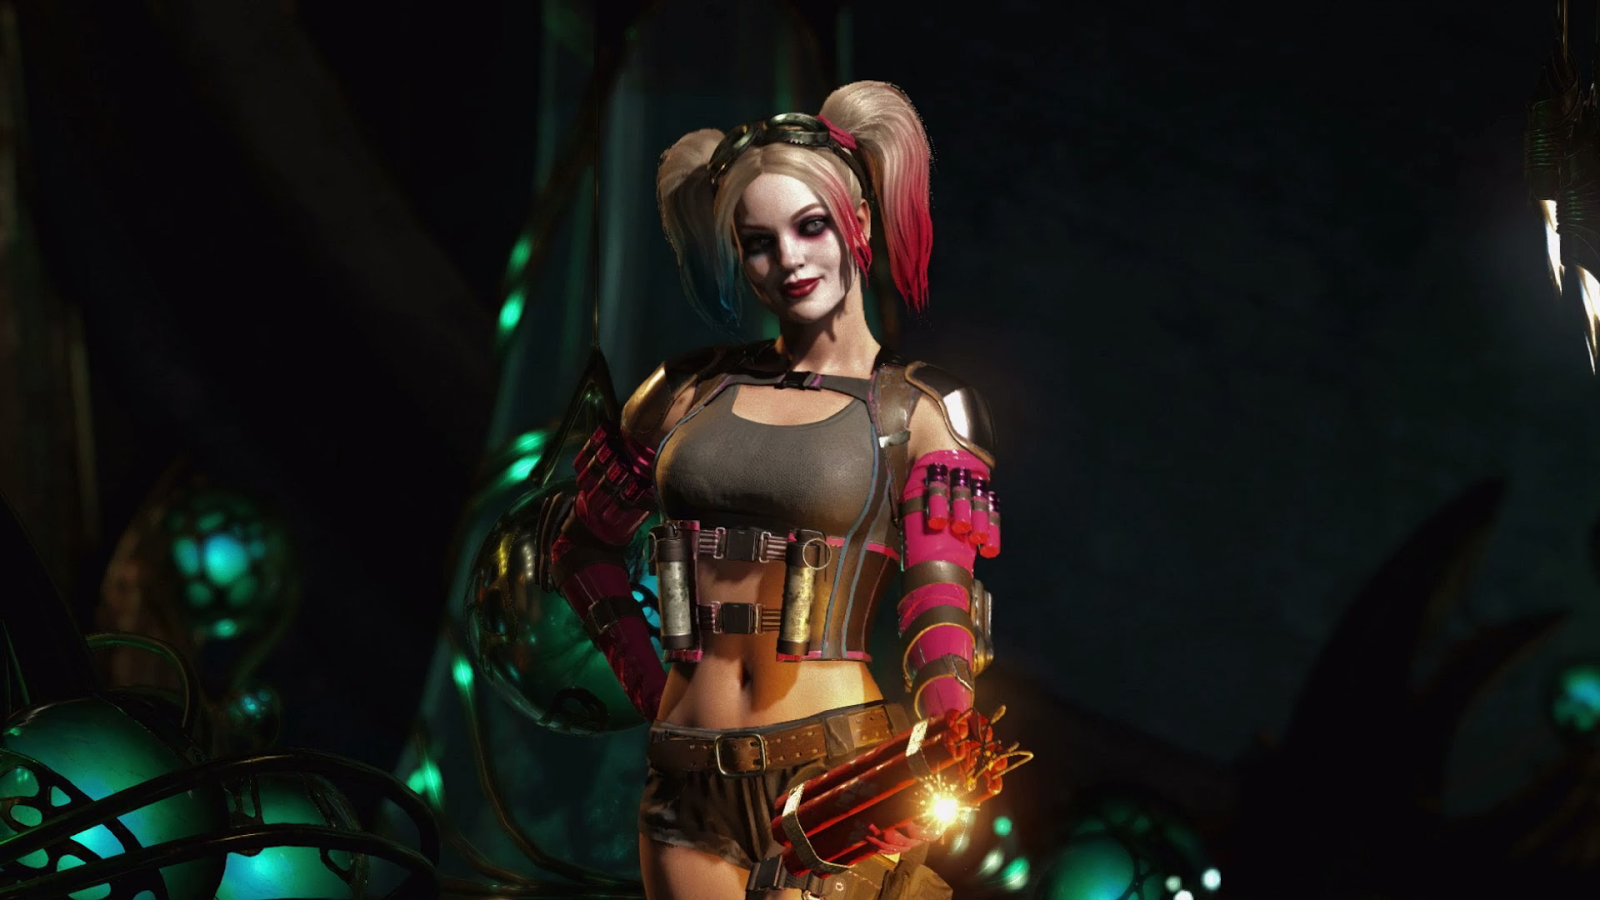 Download injustice 2 hd wallpapers 1920x1080 read games for Harley quinn wallpaper